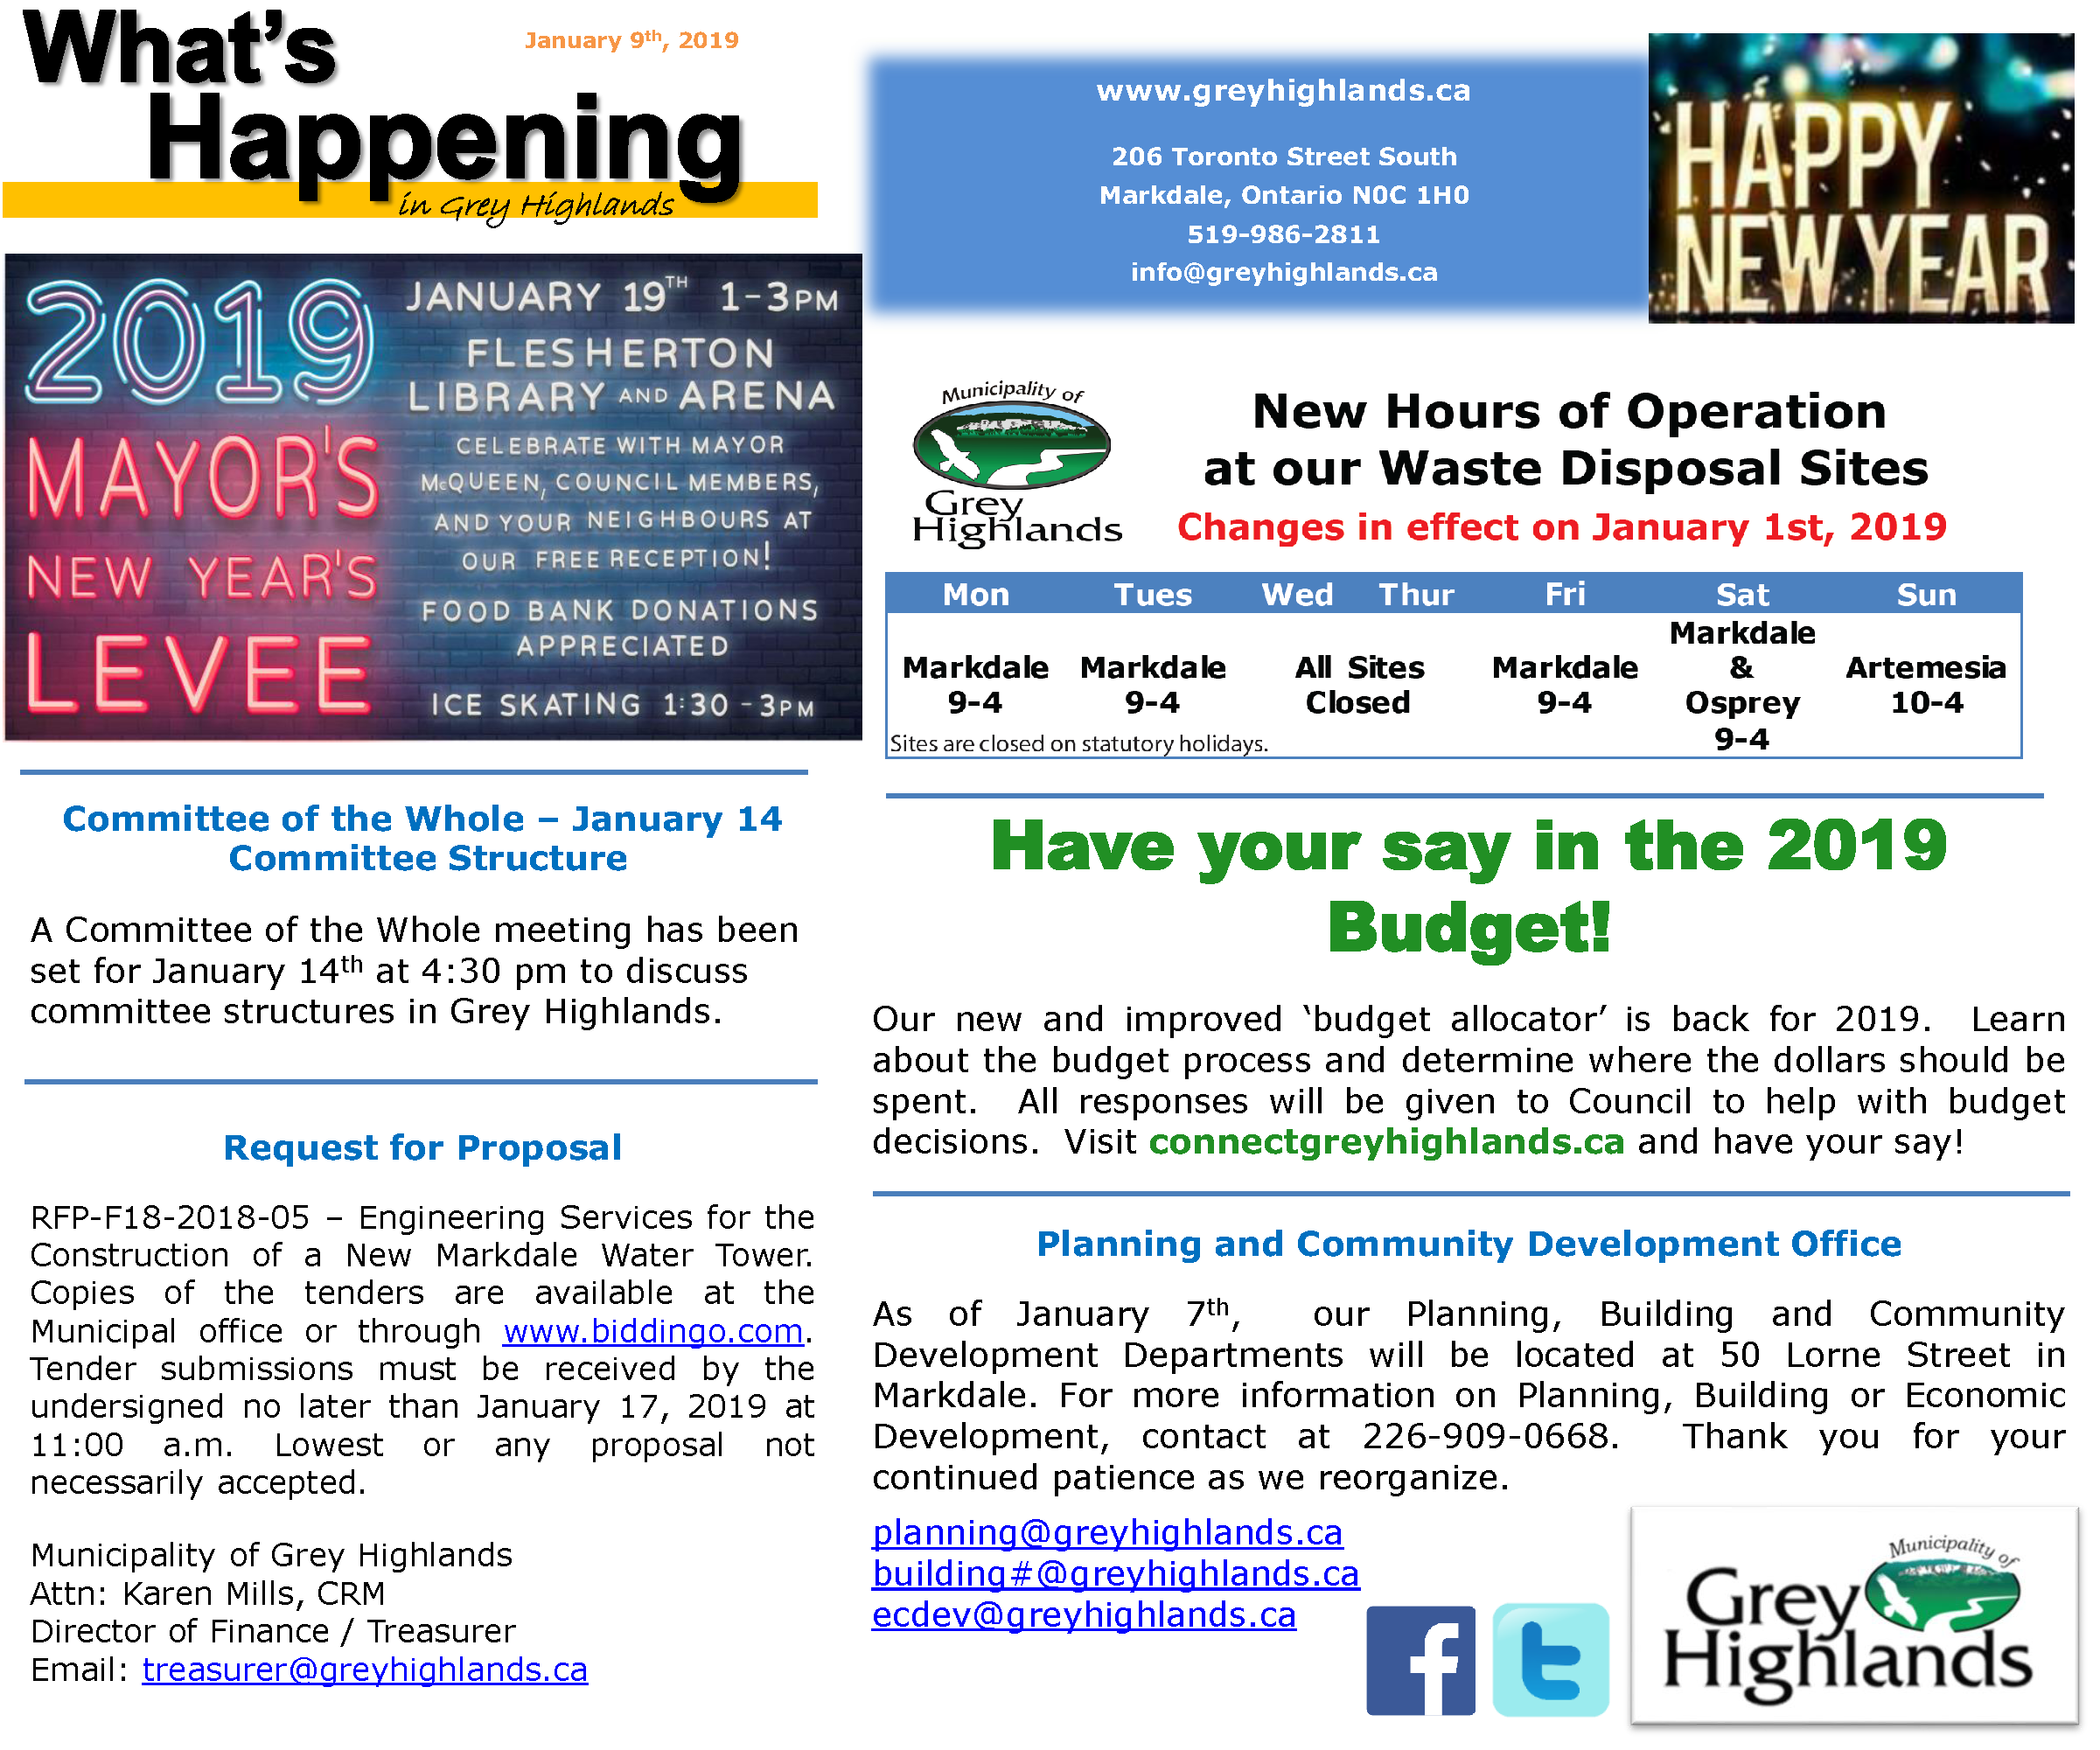 What's Happening January 9th, 2019